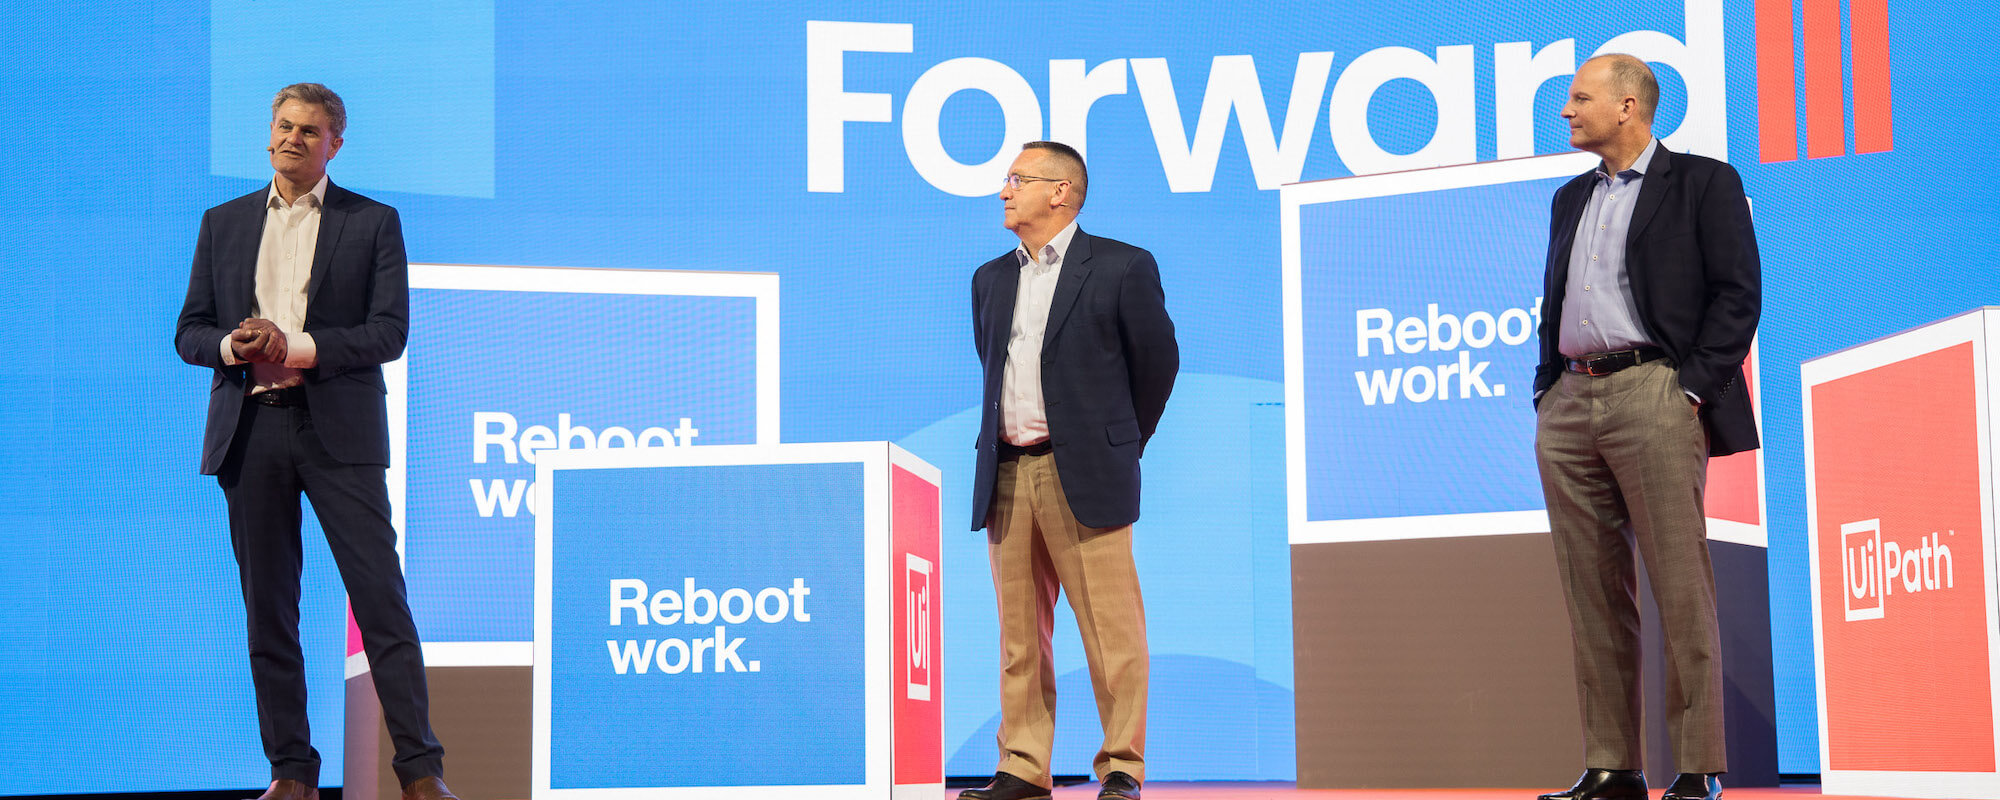 robot for every student uipath